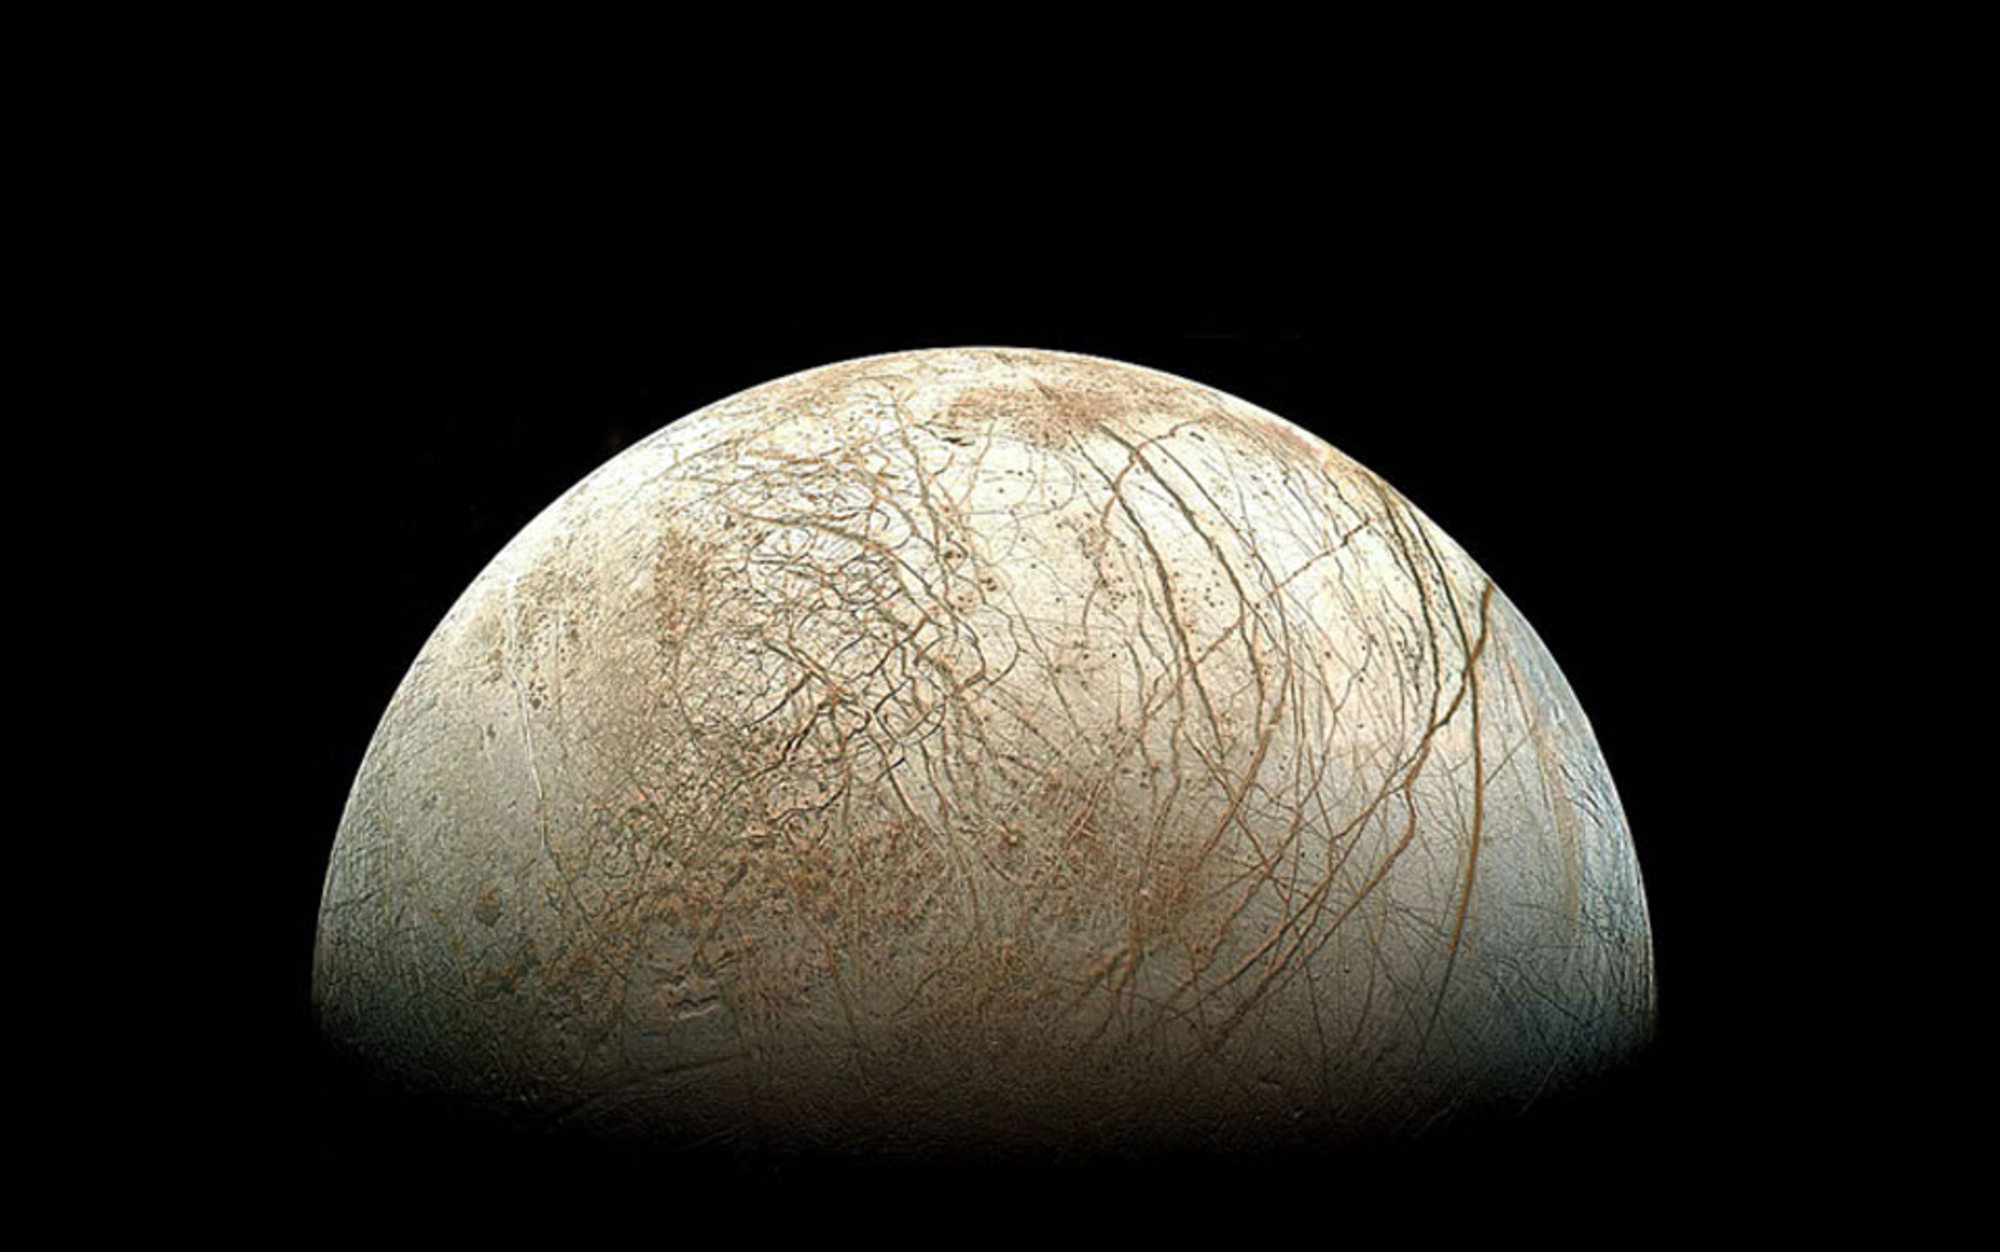 forget mars s deserts let s look for life in europa s ocean forget mars s deserts let s look for life in europa s ocean essays